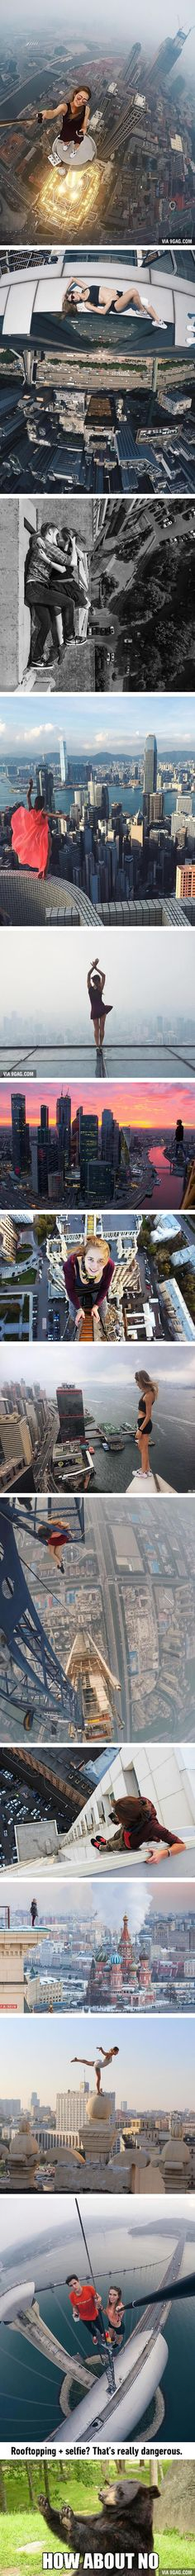 This Russian Girl Does Rooftopping And Takes The Riskiest Selfies Ever (Angela Nikolau)